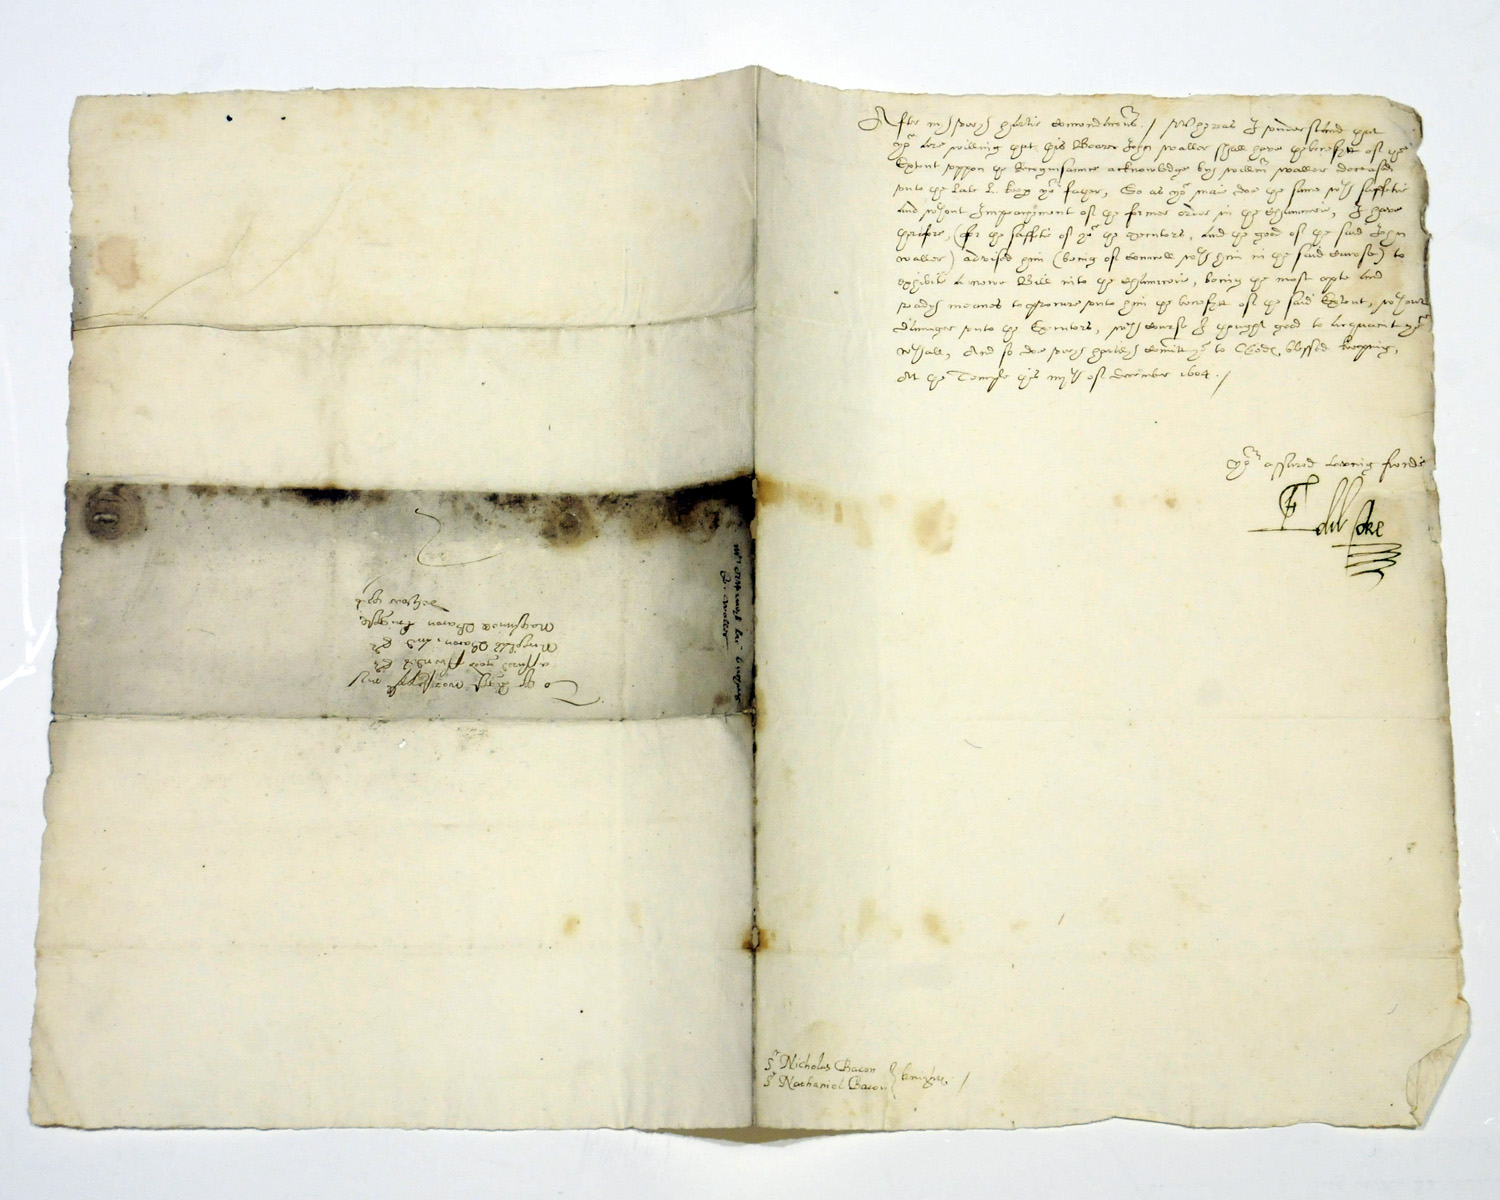 COKE, Sir Edward (1552-1634). Letter signed ('Edw. Coke') to Sir Nathaniel and Sir Nicholas Bacon, 'At the Temple', 4 December 1604, informing them of the right of John Waller to 'the benefytt of your Extent upon the Recognisaunce acknowledge [sic] by William Waller deceased unto the late L[ord] Keep[er] your father'; he has advised Waller to 'exhibit a newe Bill into the chauncerie' as the best means of procuring this, half page, folio, address leaf, small impressed seal. Provenance: Sotheby's sale, 22 June 1976, lot 71.